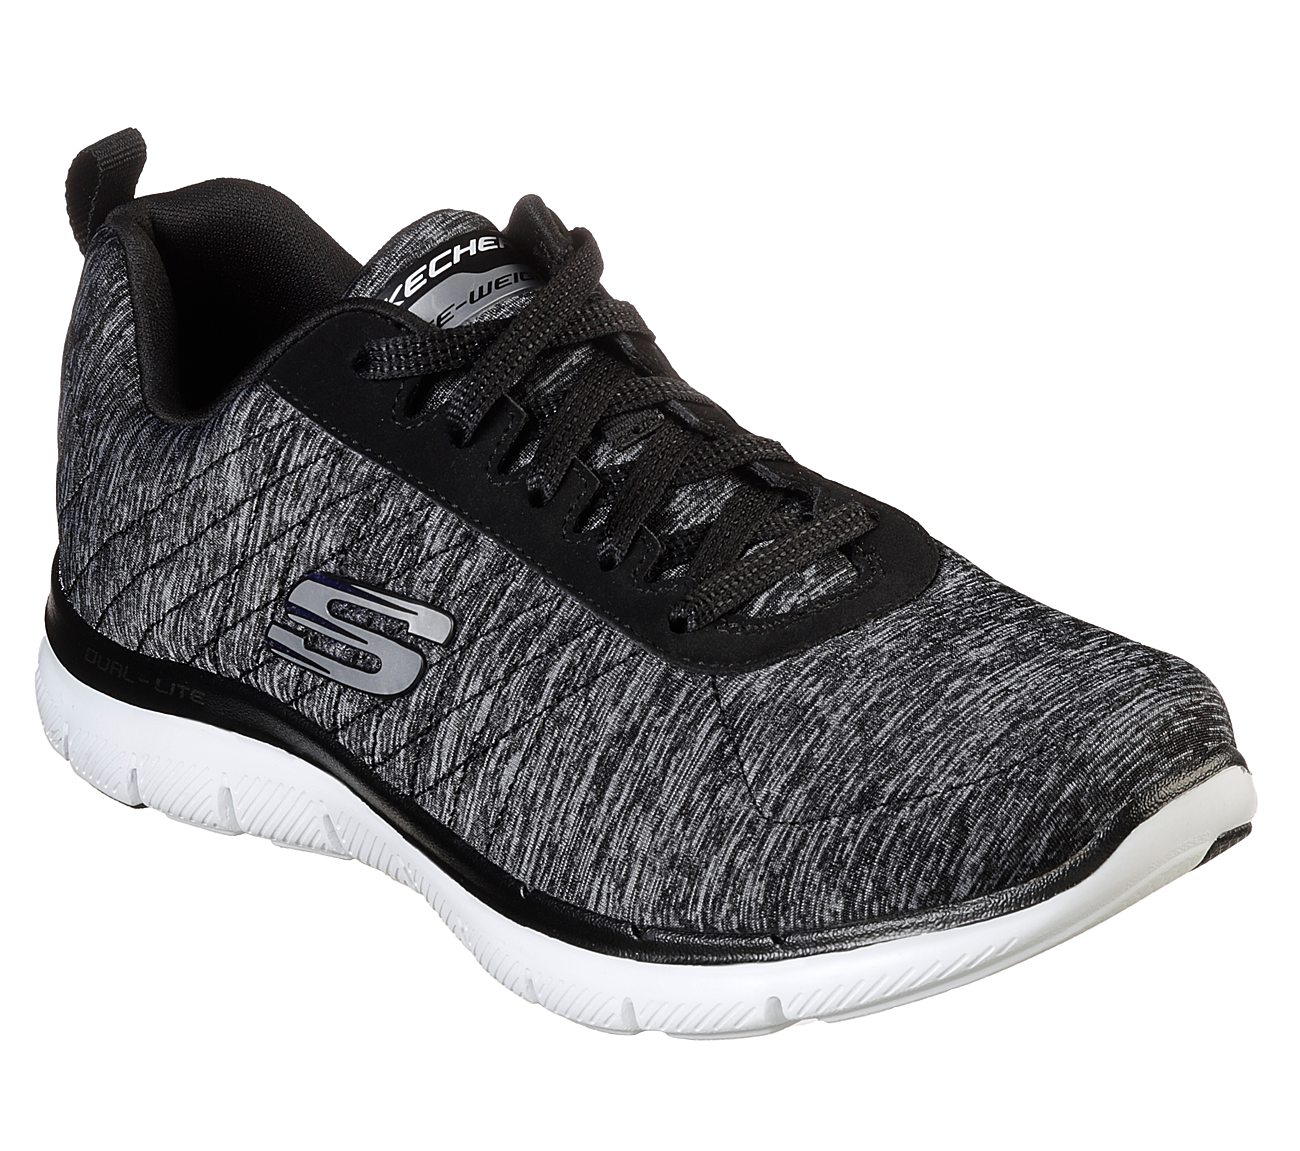 Skechers Damen Flex Appeal 2.0